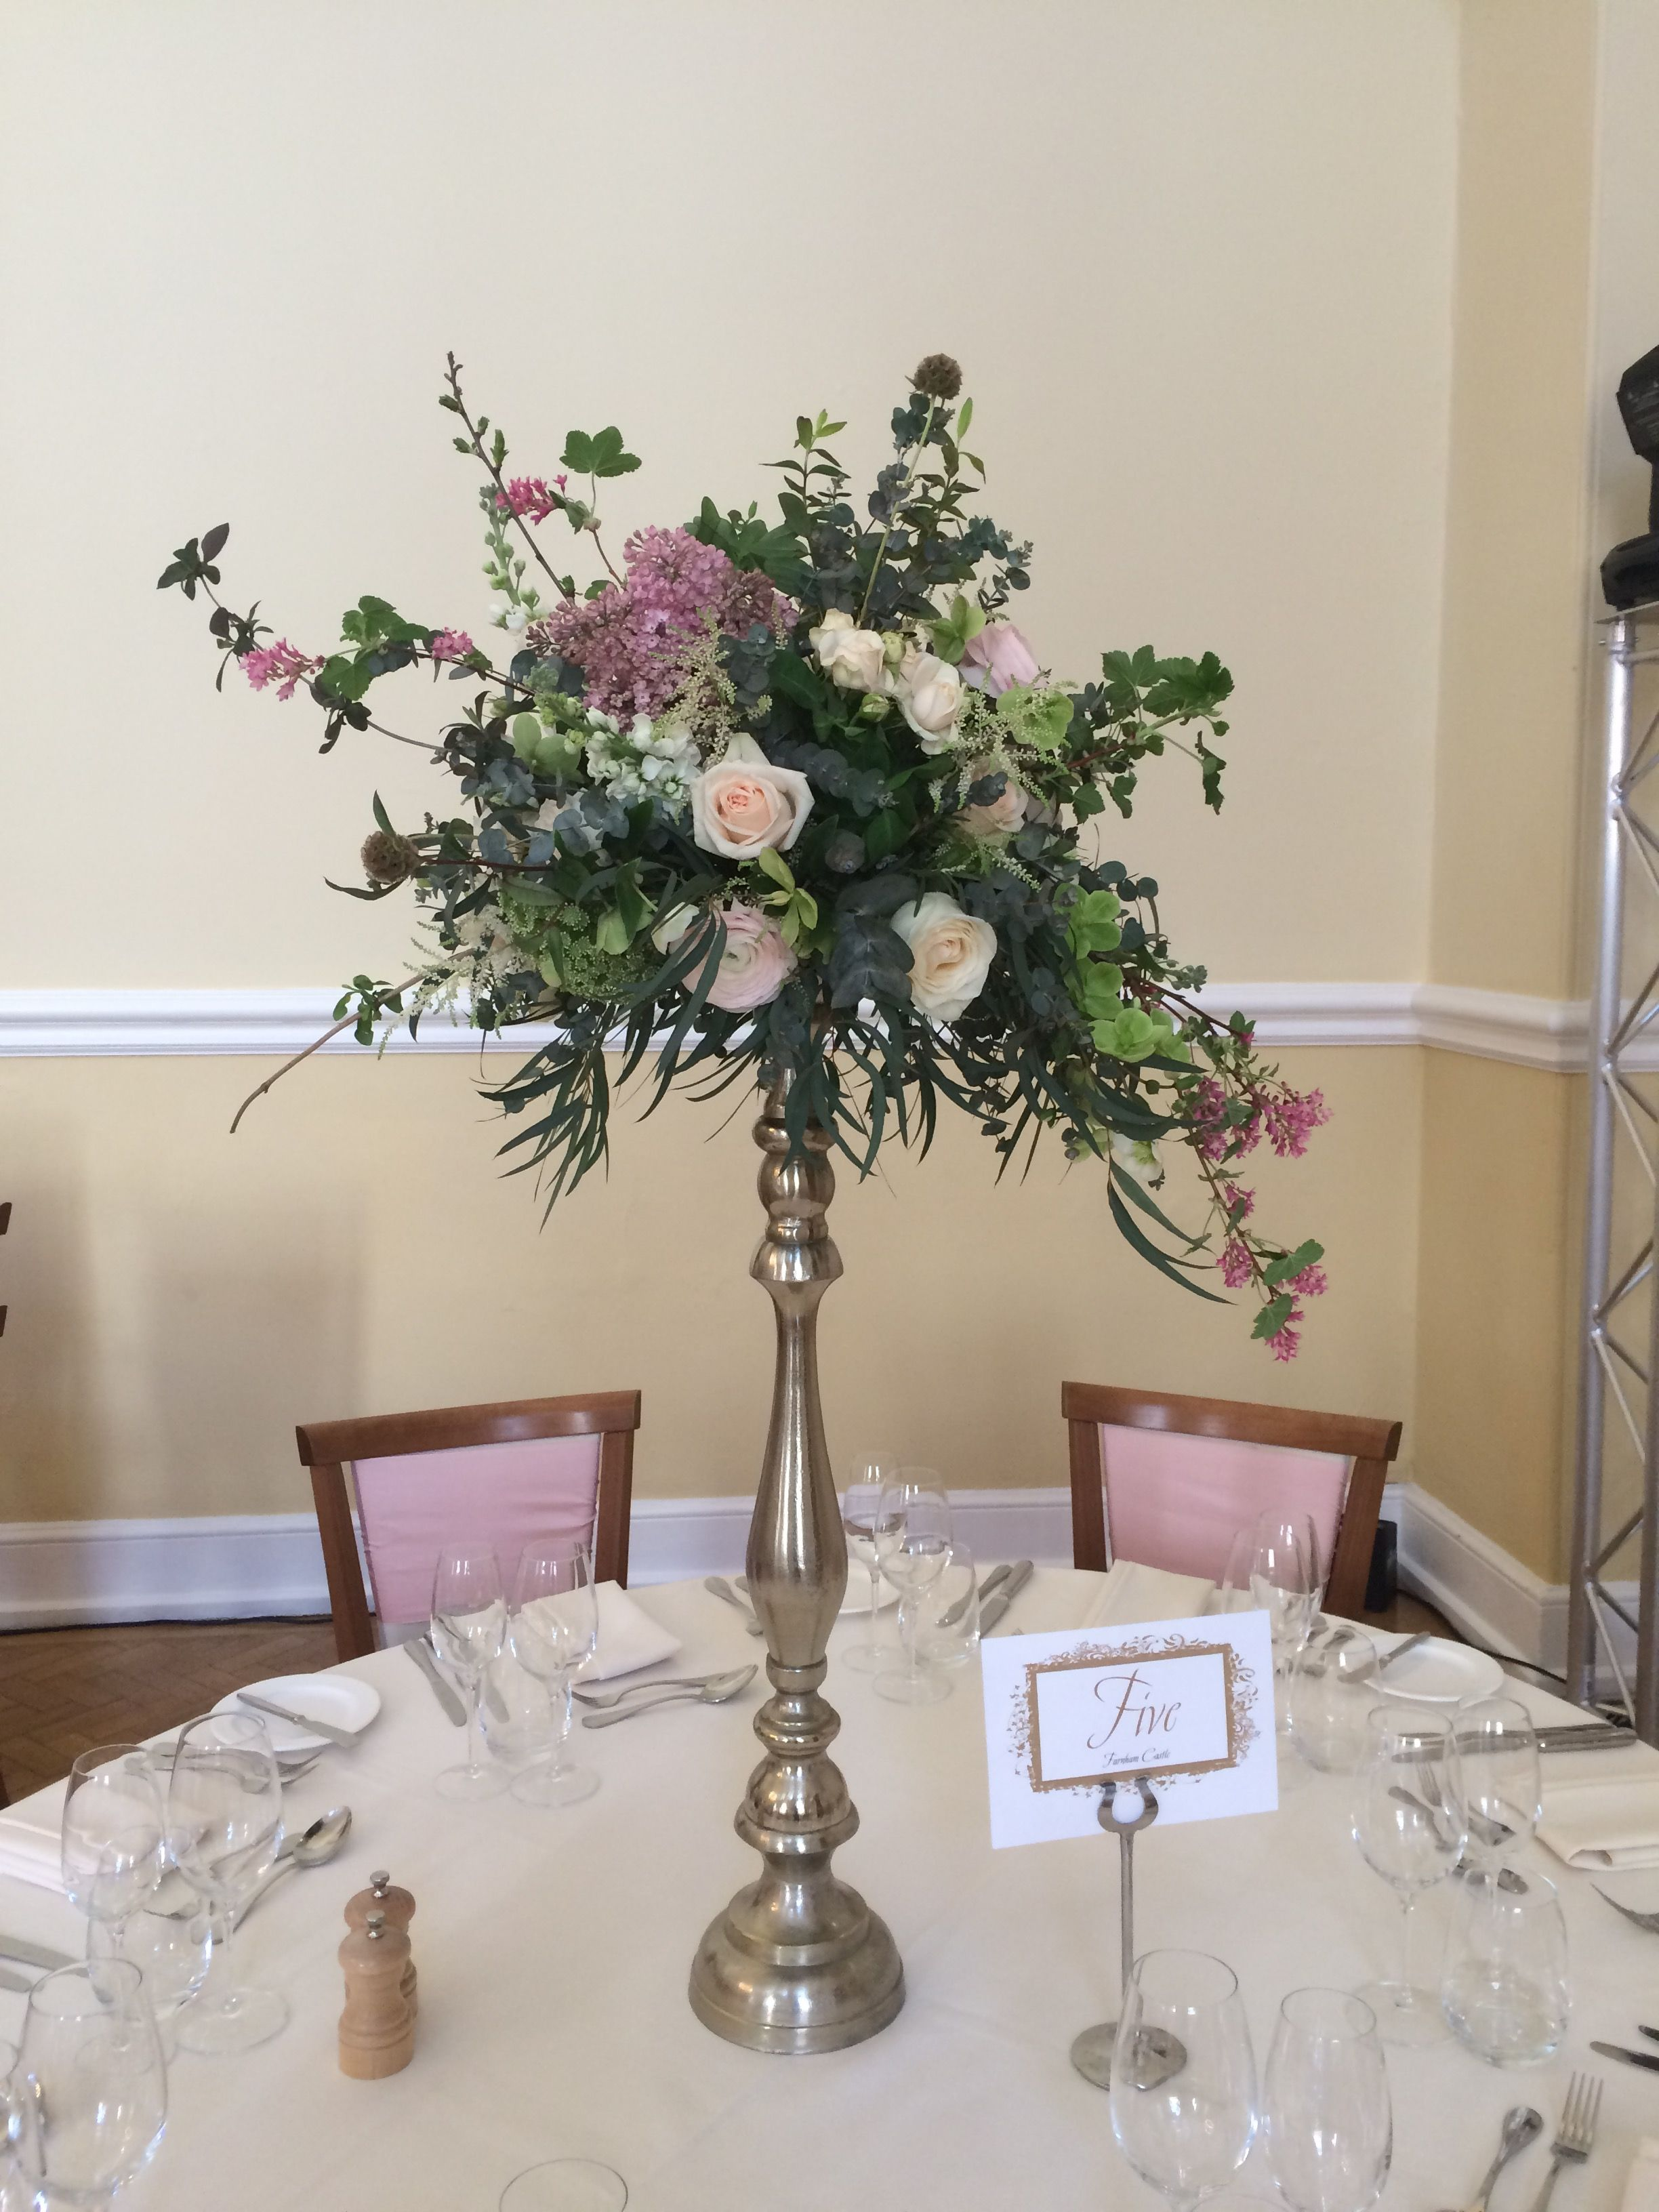 Tall floral design on a champagne gold stand, containing a mixture of seasonal foliage, scented Garden Roses Lilac, Scabious Pods, Stocks, Astilbe. Designed and created by www.hannahberryflowers.co.uk